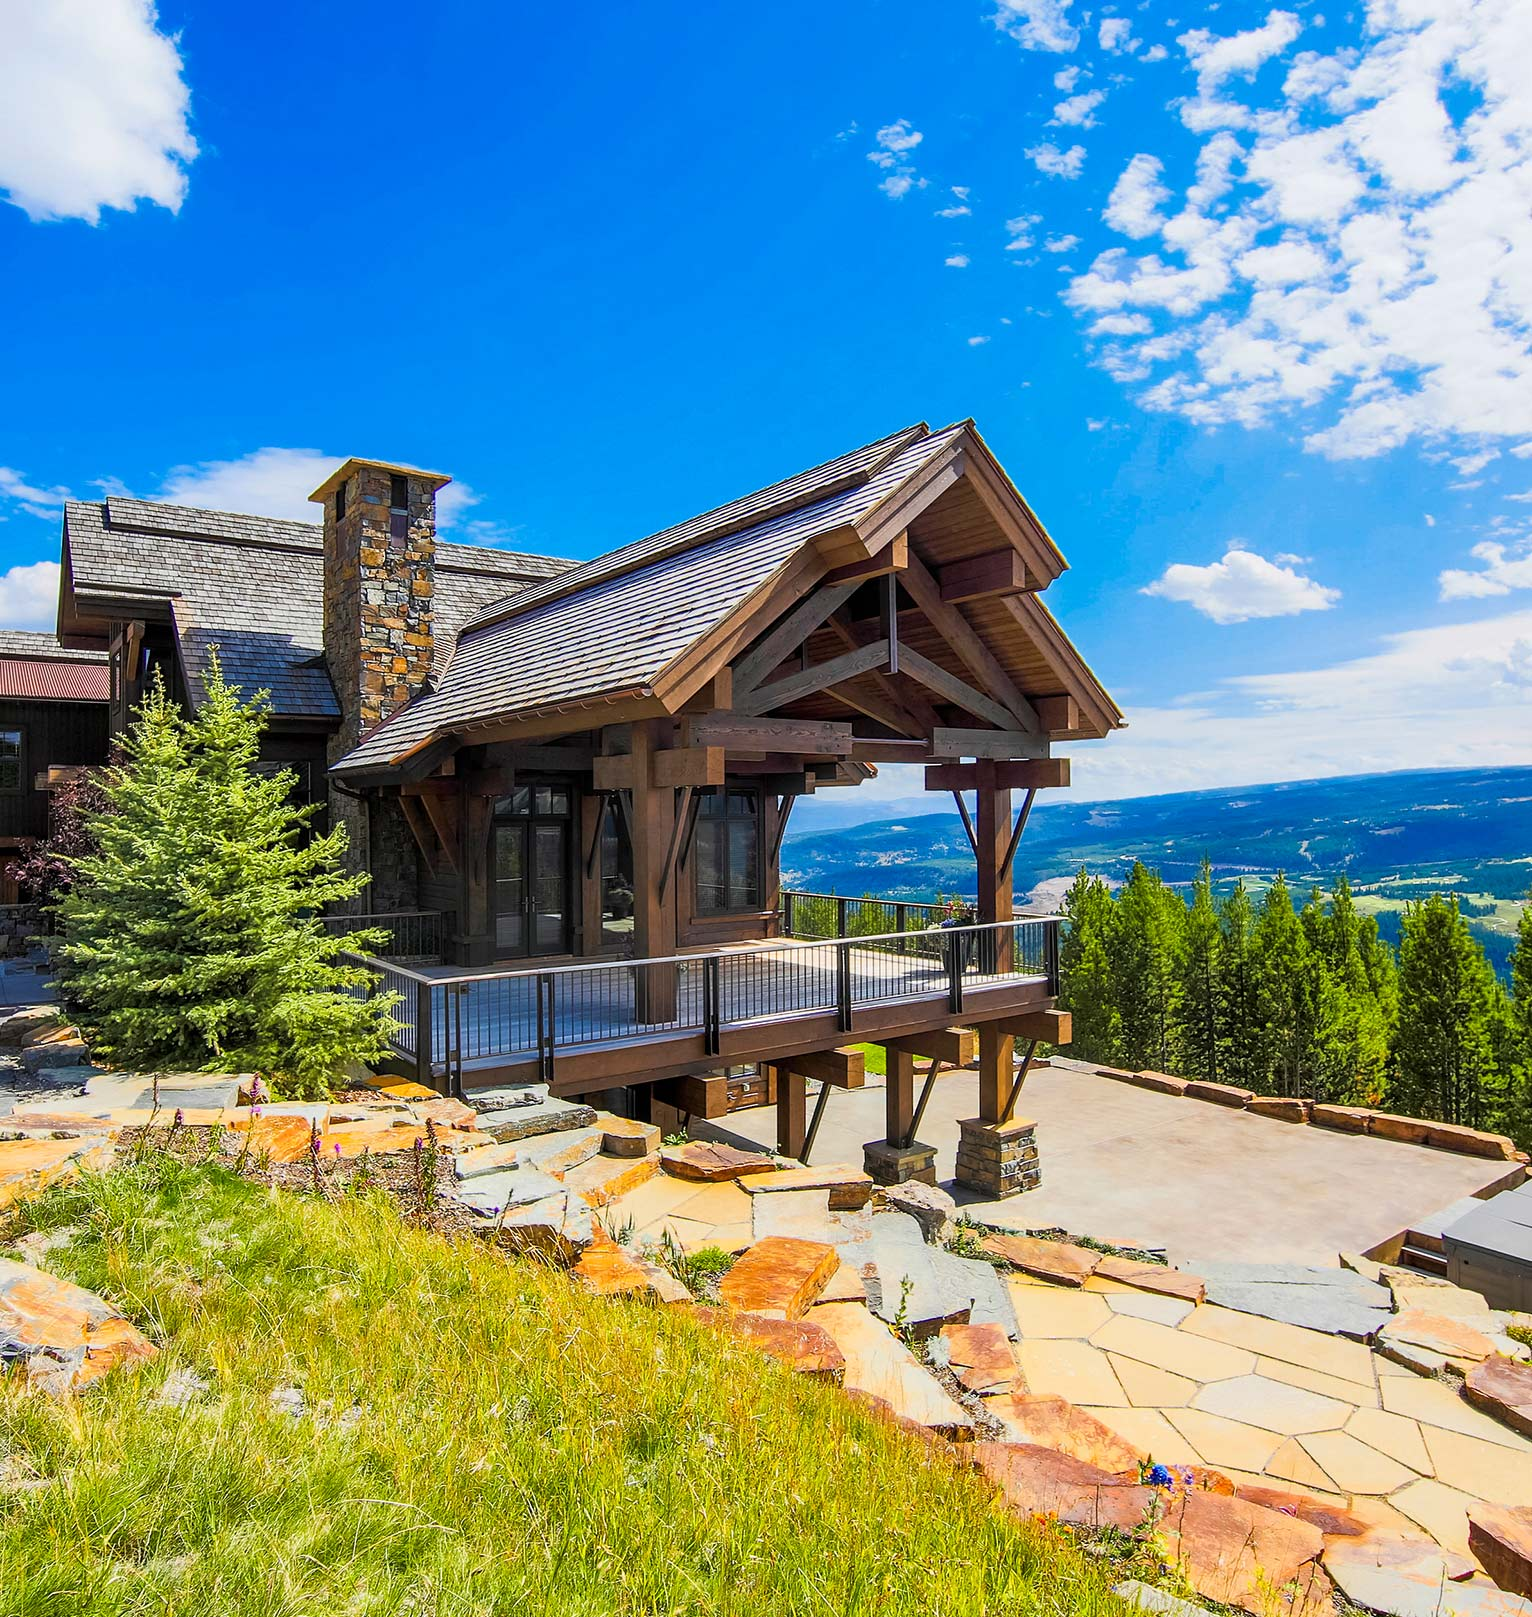 Beautiful home overlooking the valley below, with lots of stone paver landscaping leading up to the front door